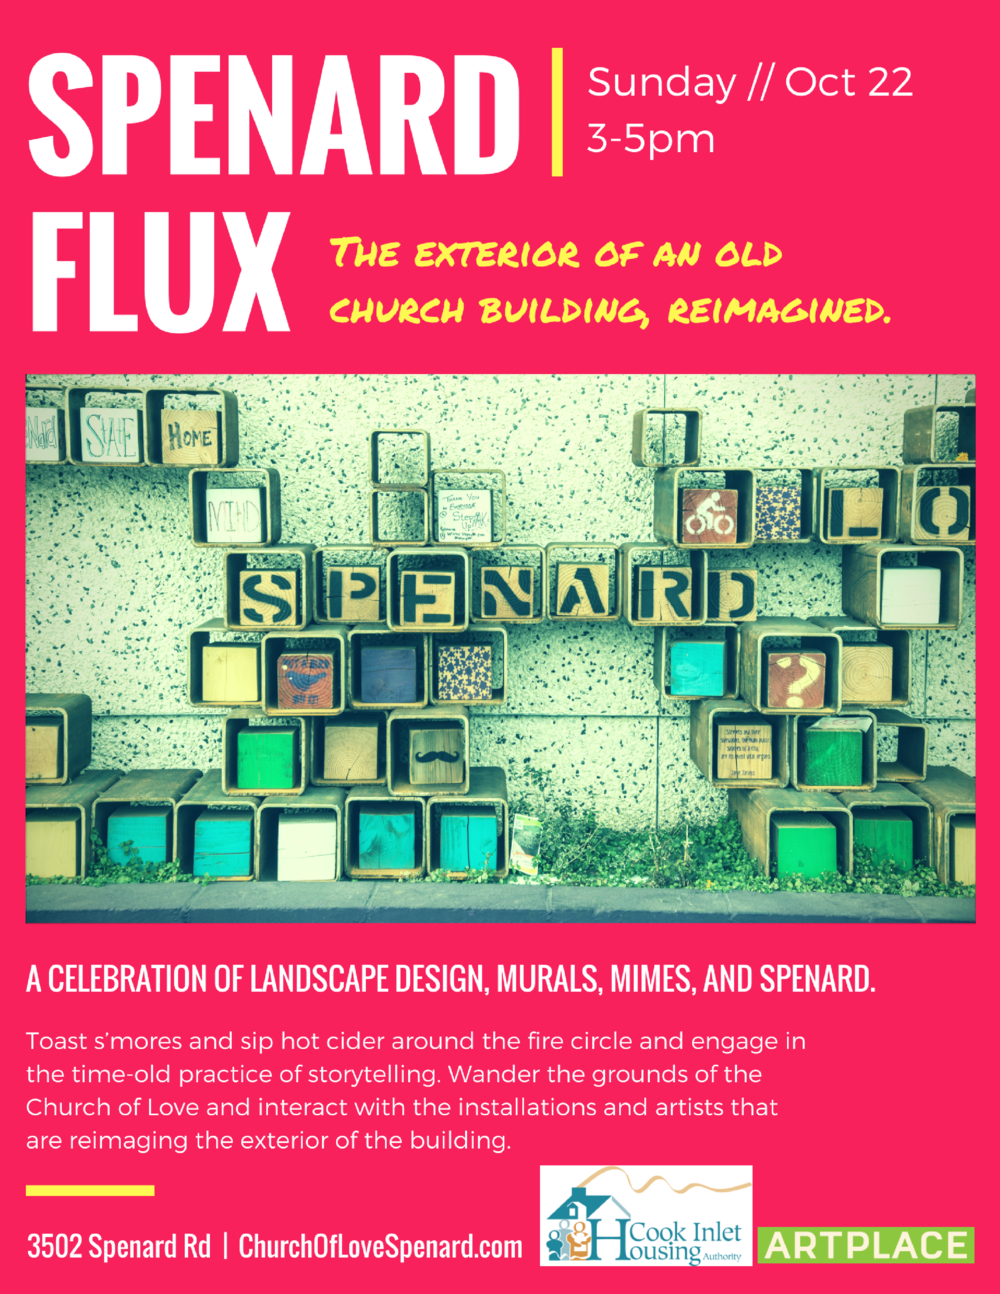 Spenard Flux.png